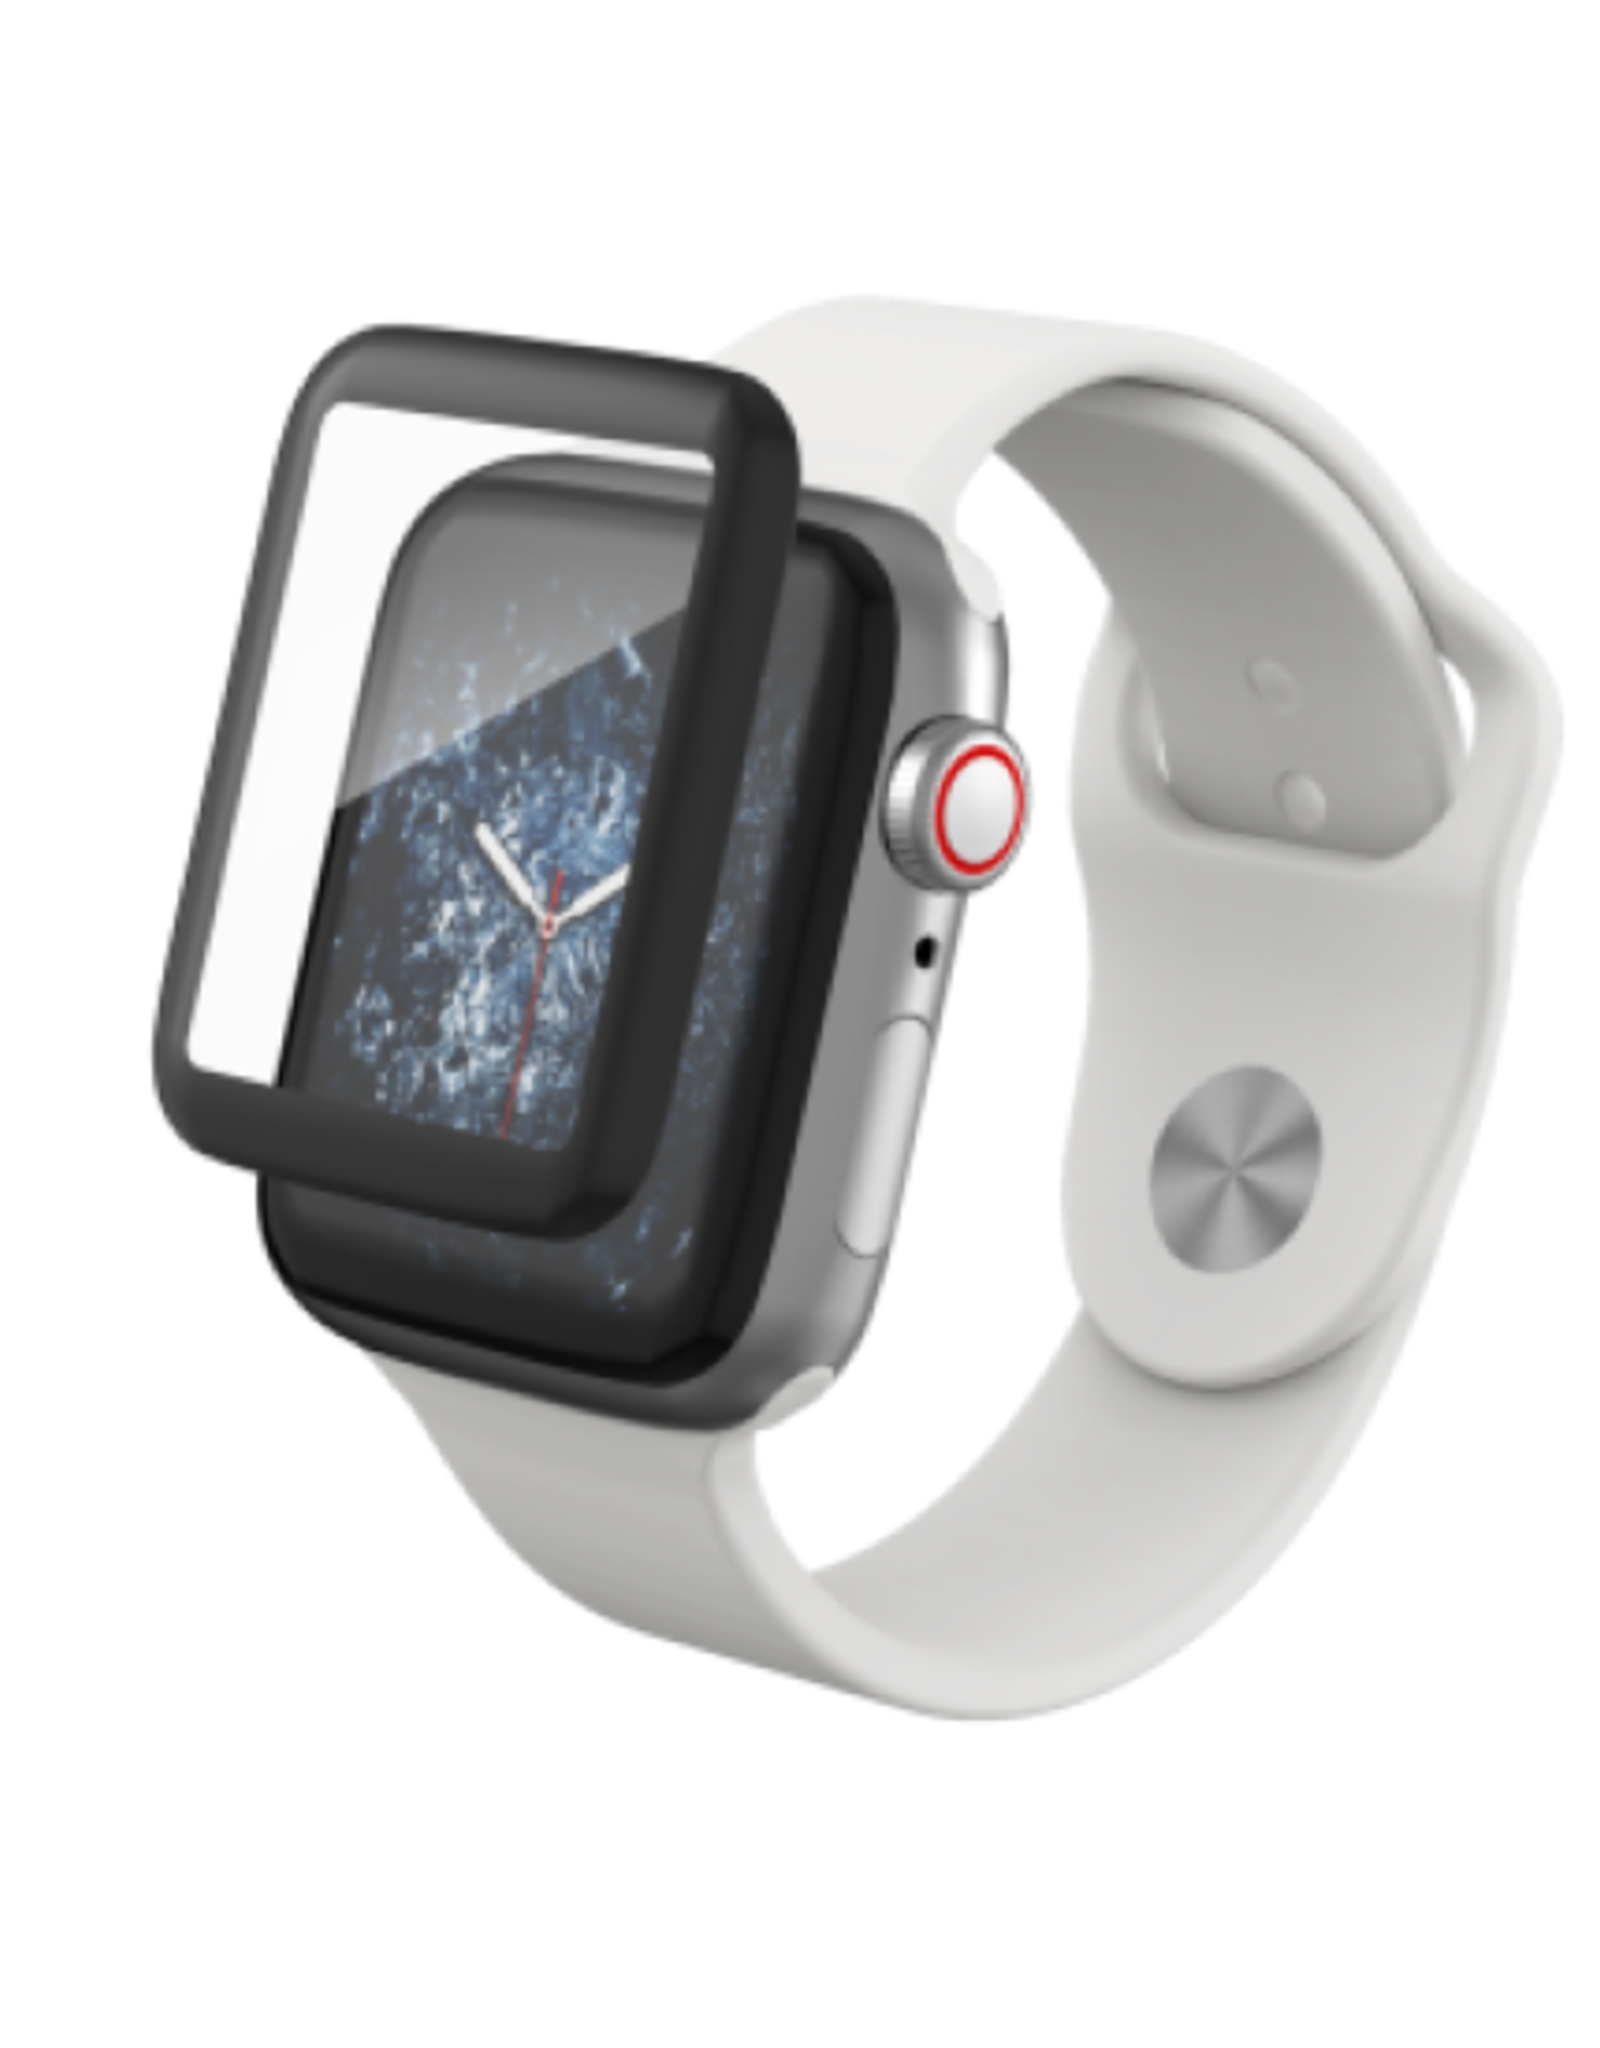 ZAGG | InvisibleShield Glass Curve Elite for Apple Watch Series 4 (40mm)-Clear IS-200102442